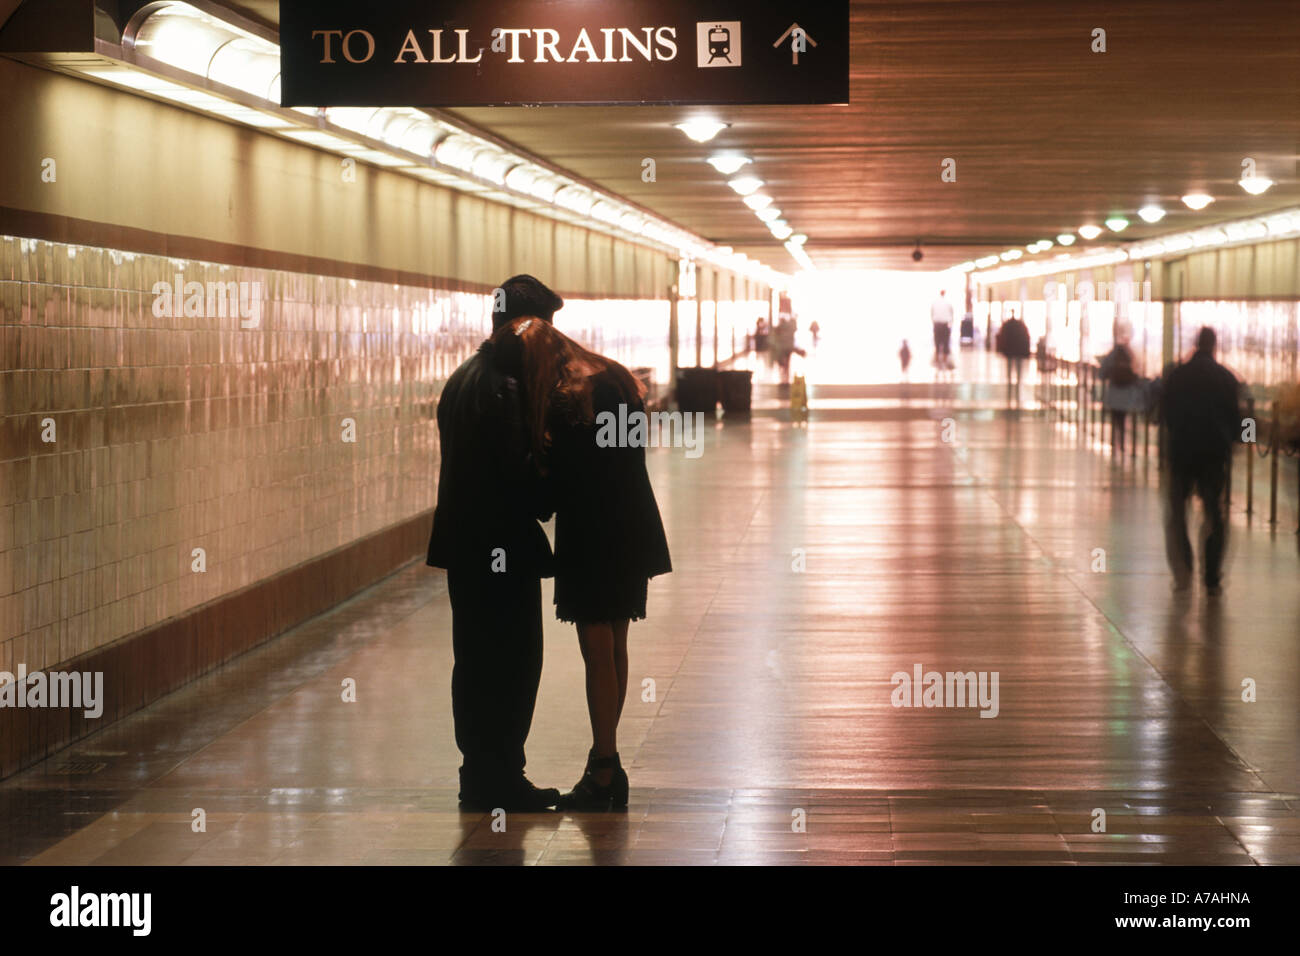 Couple saying goodbye in hallway to departing trains at Union Station in Los Angeles - Stock Image